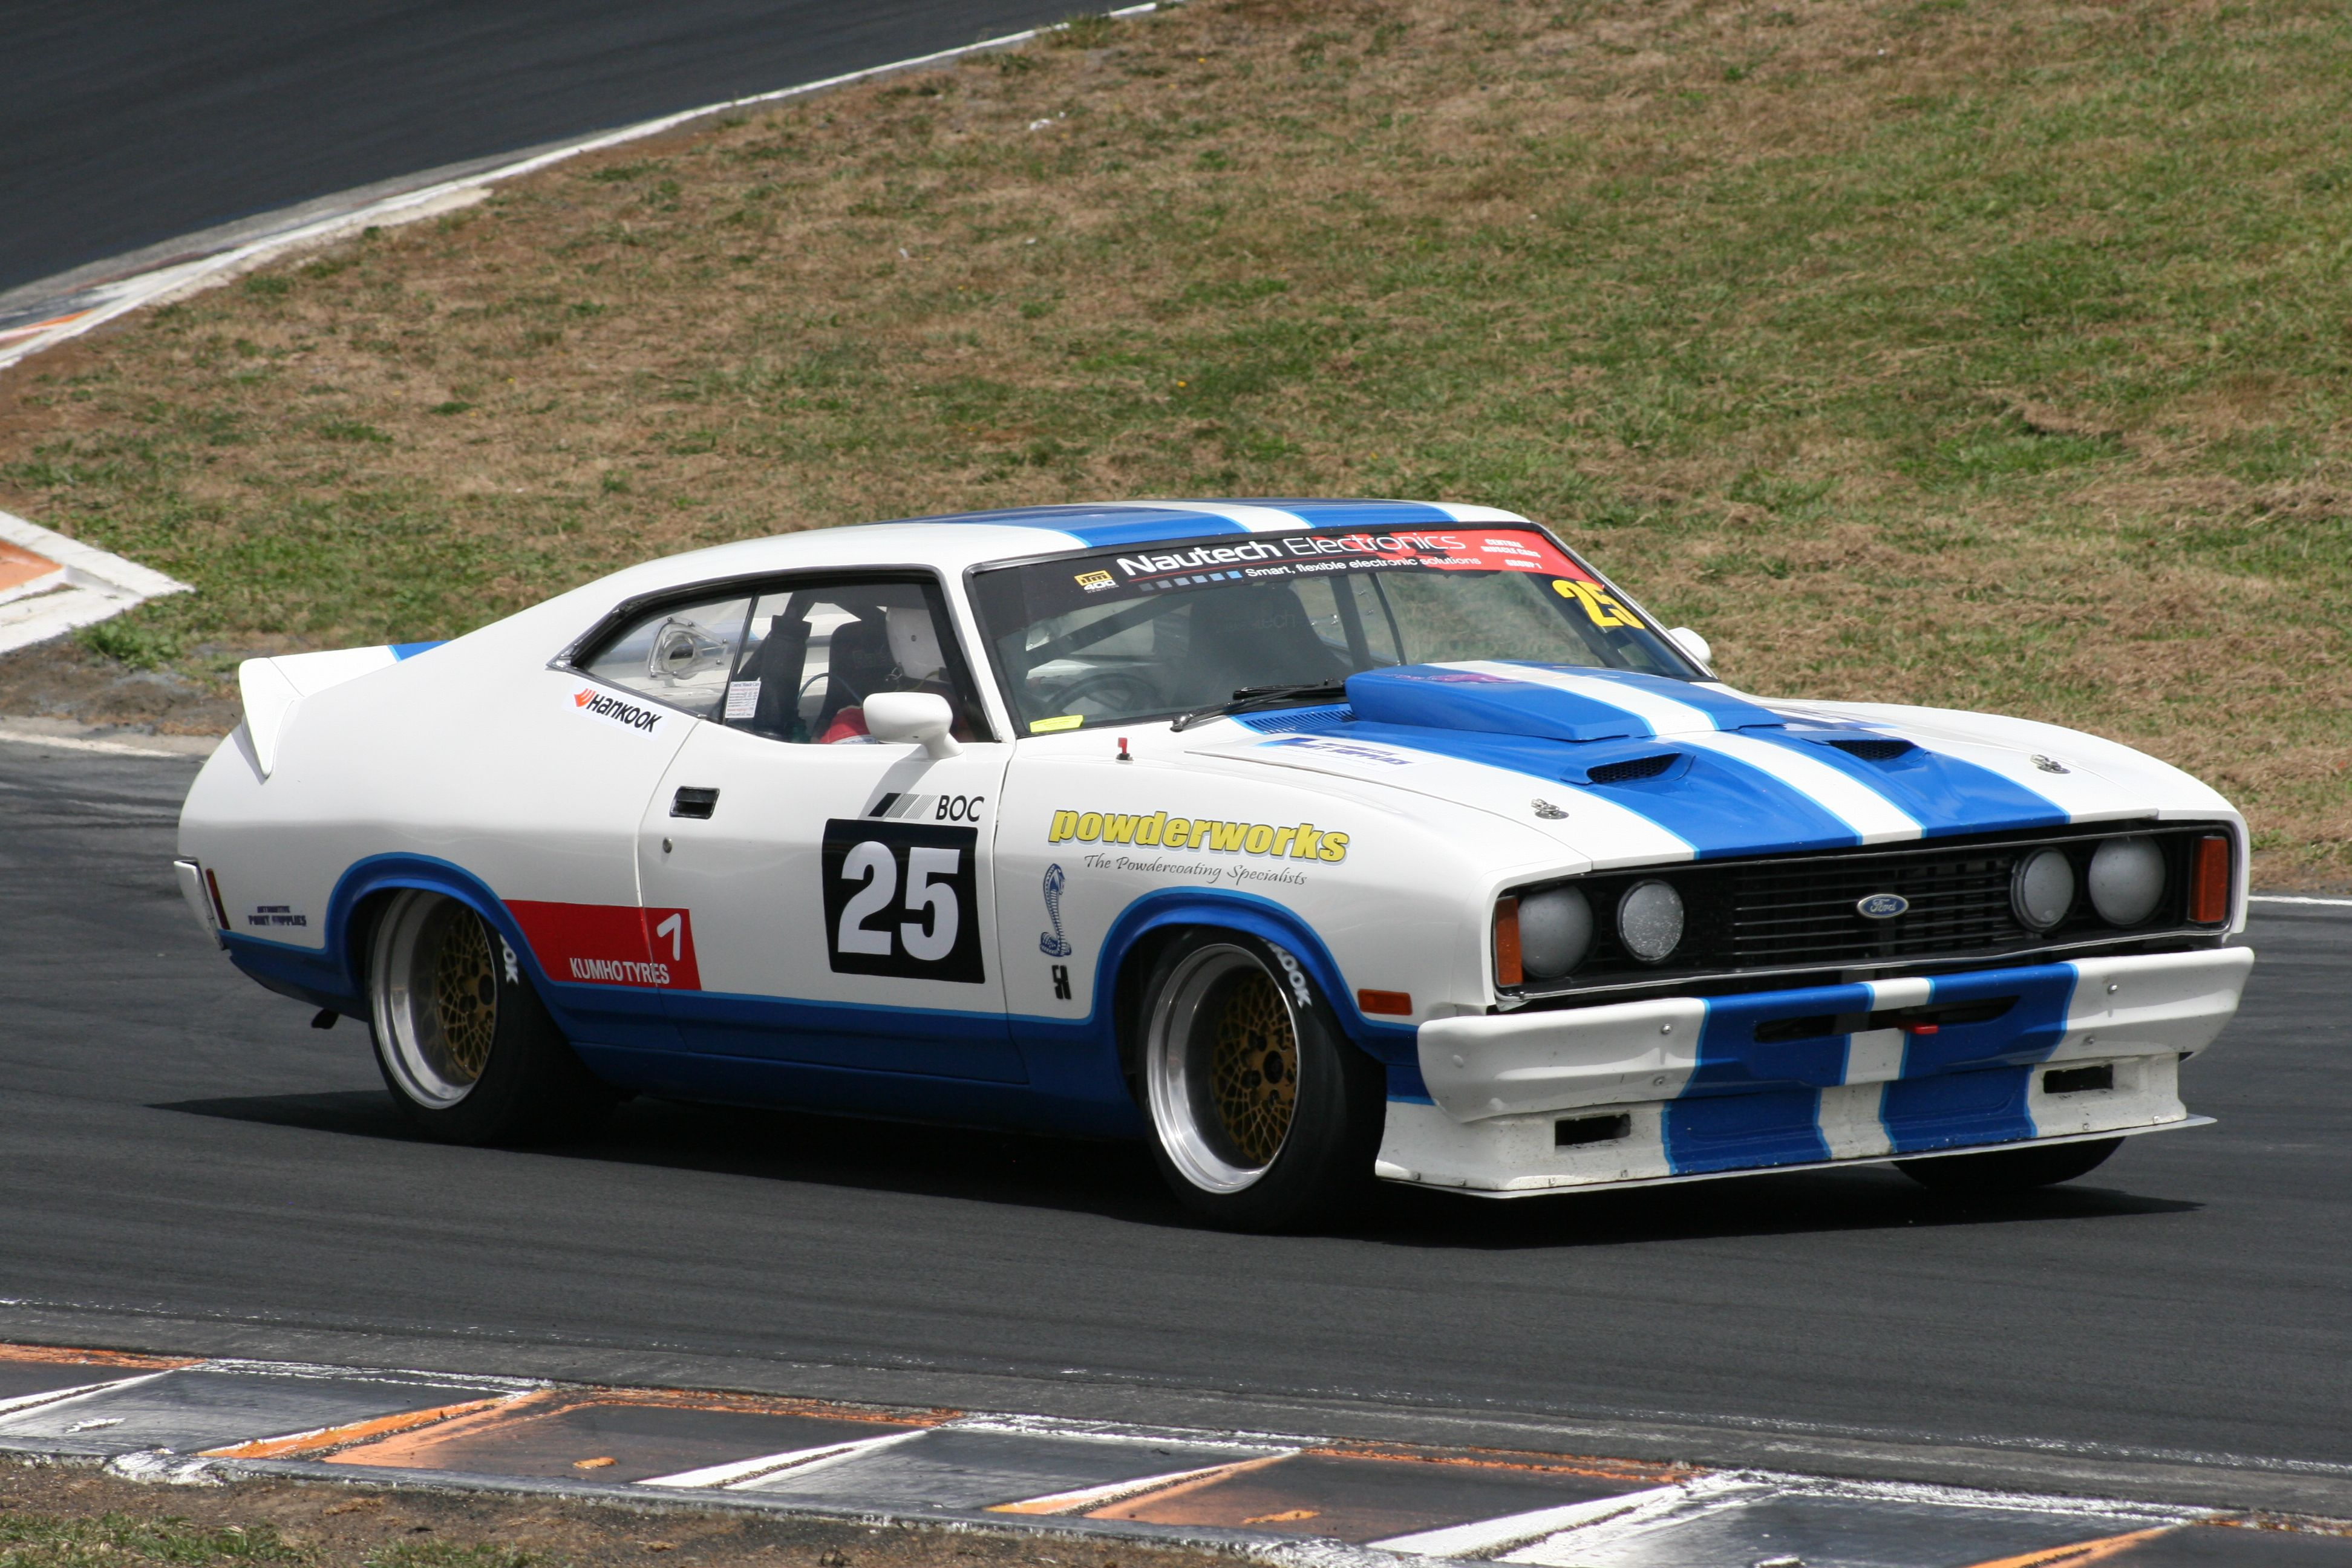 vern muller 1977 ford falcon xc cobra racing at hampton. Black Bedroom Furniture Sets. Home Design Ideas